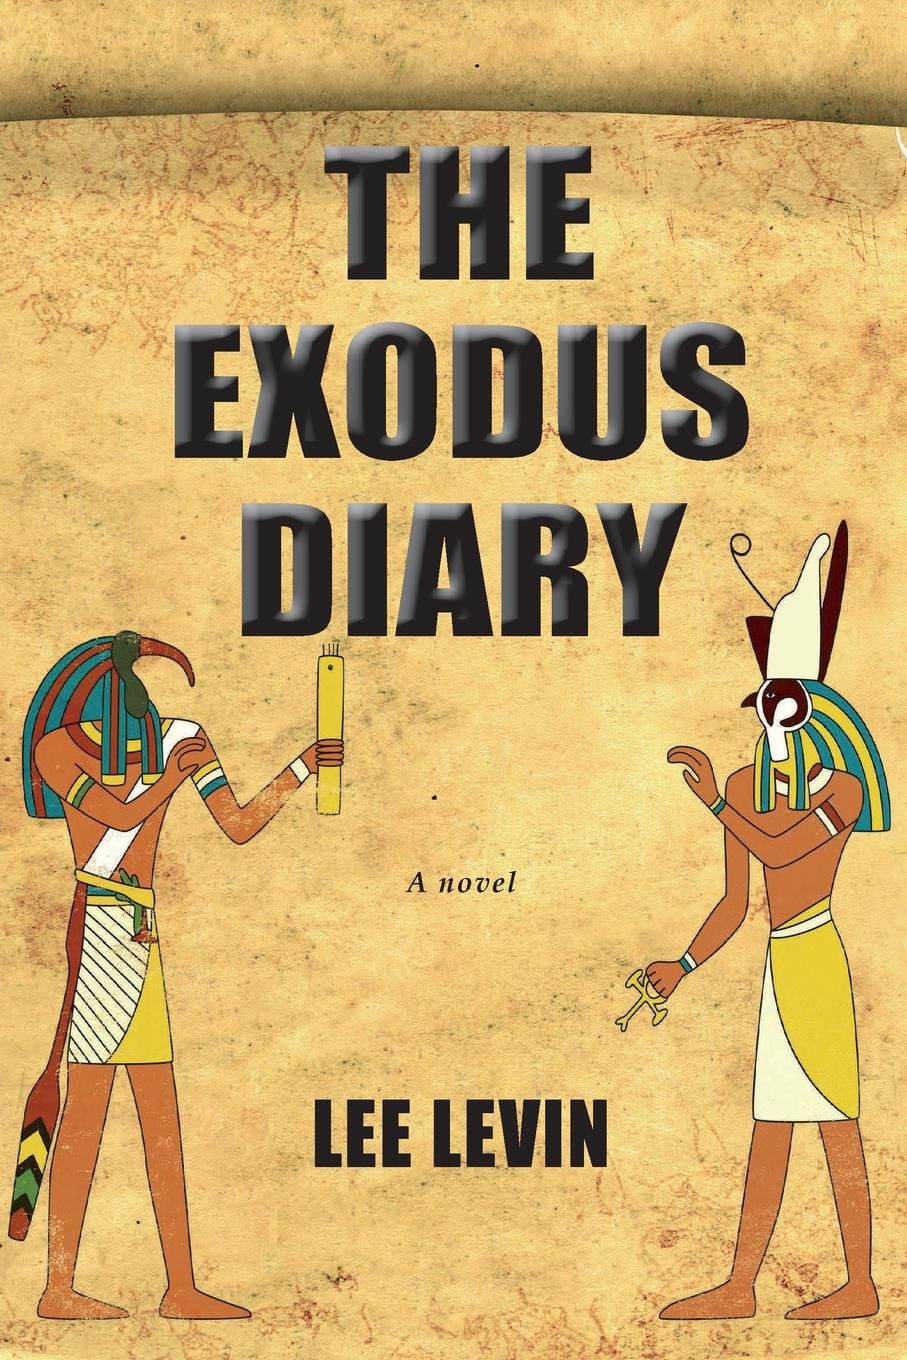 Lee Levin The Exodus Diary browne abdullah bonaparte in egypt and the egyptians of to day